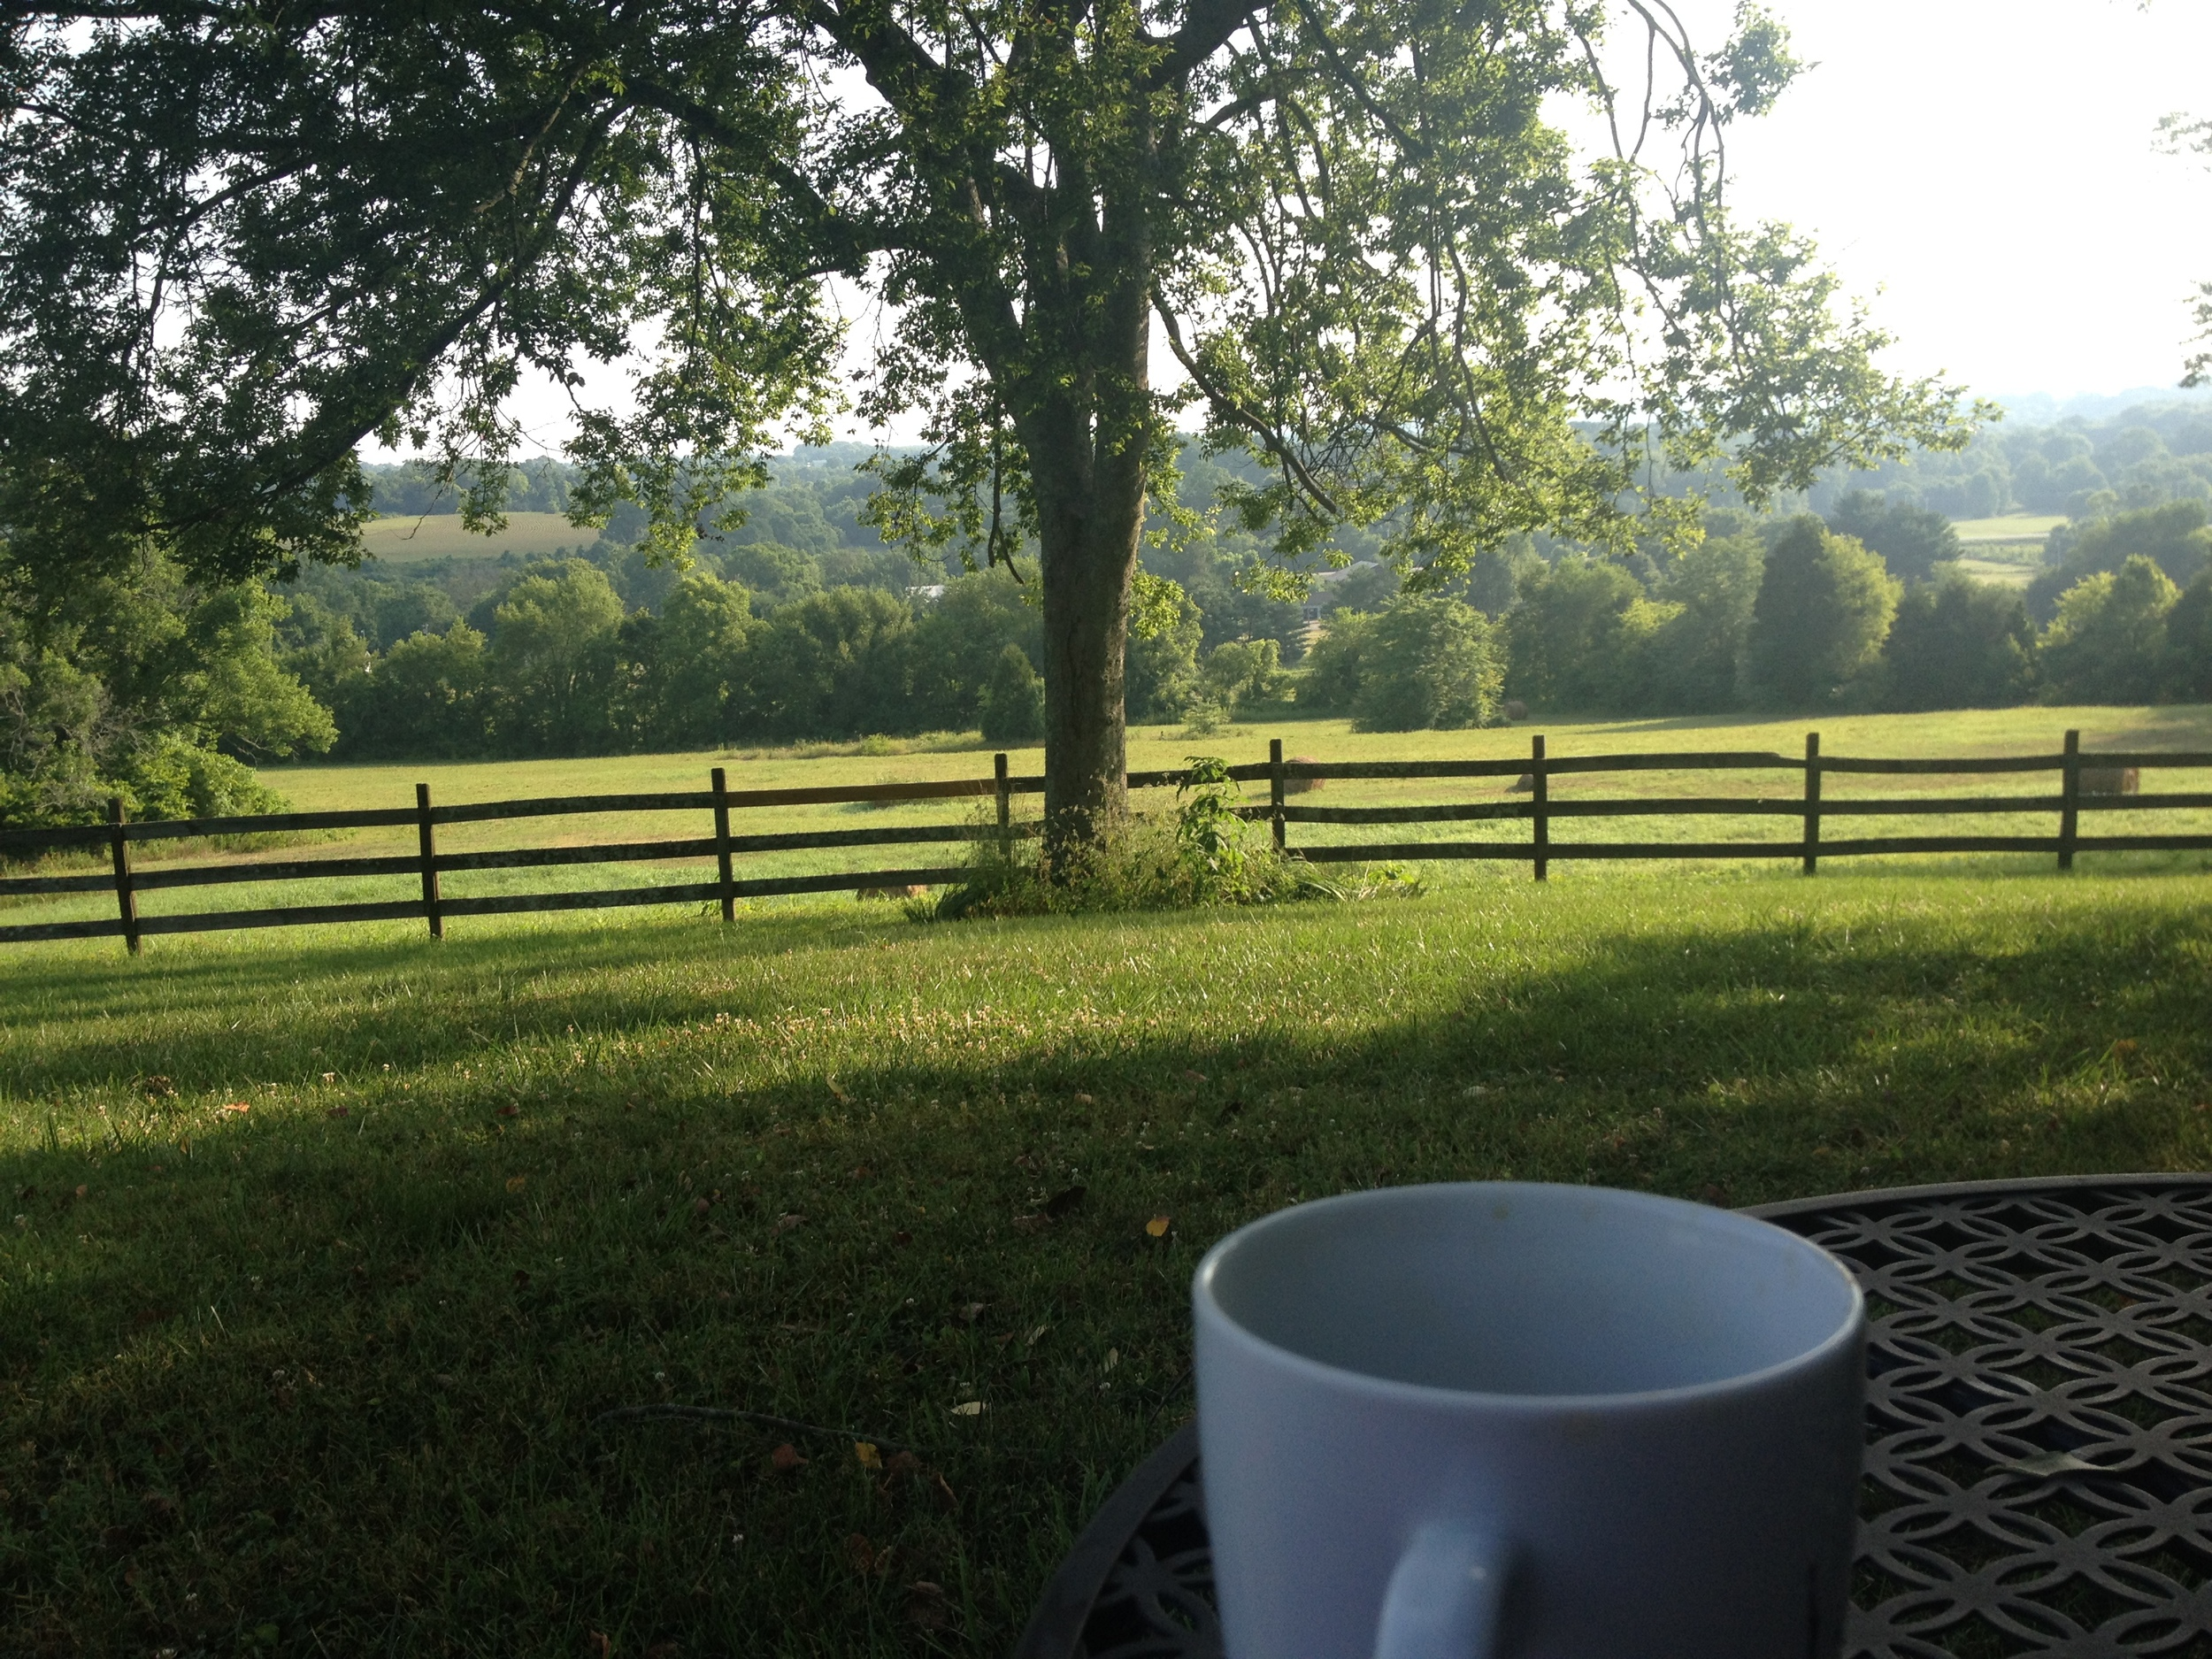 Morning coffee and my view